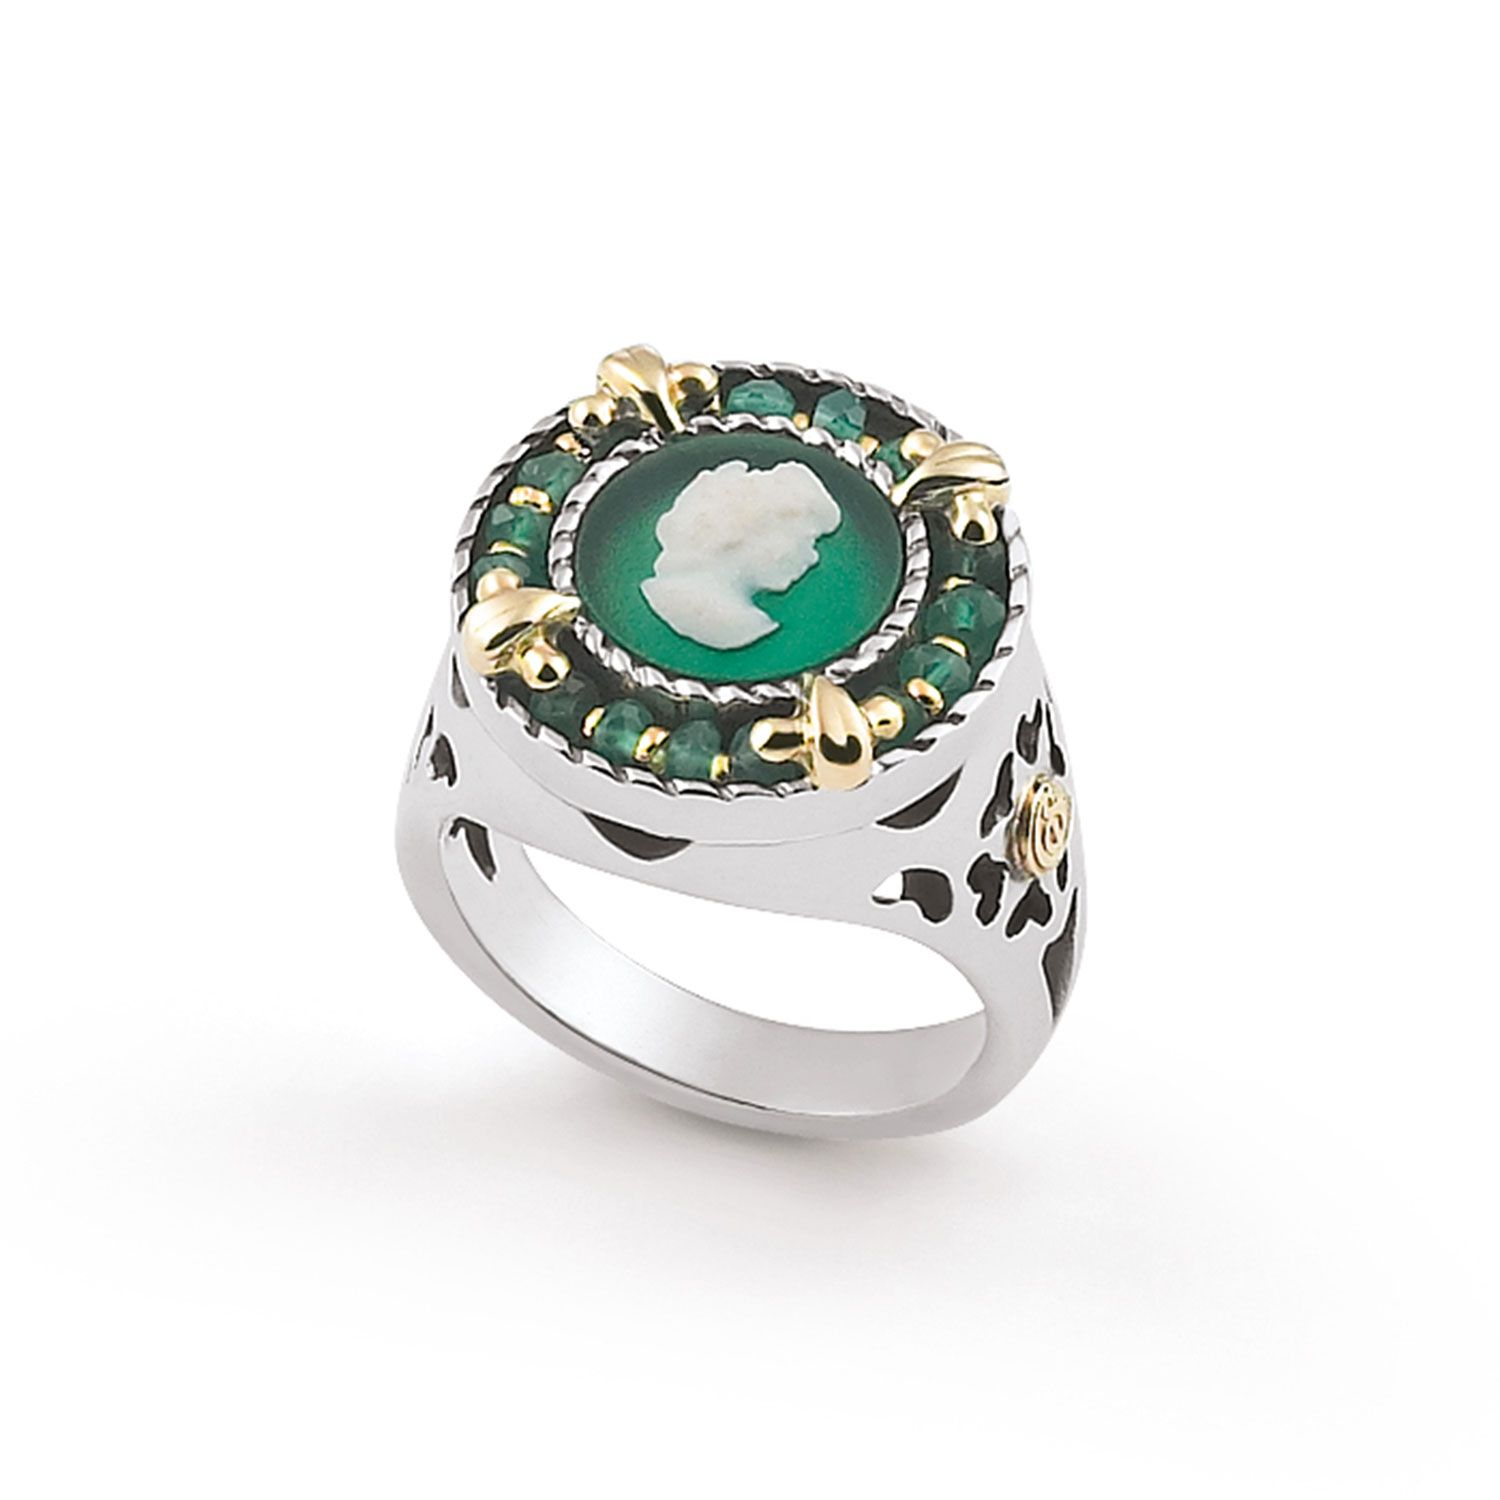 Ring with colored round Cameo (19237ve)